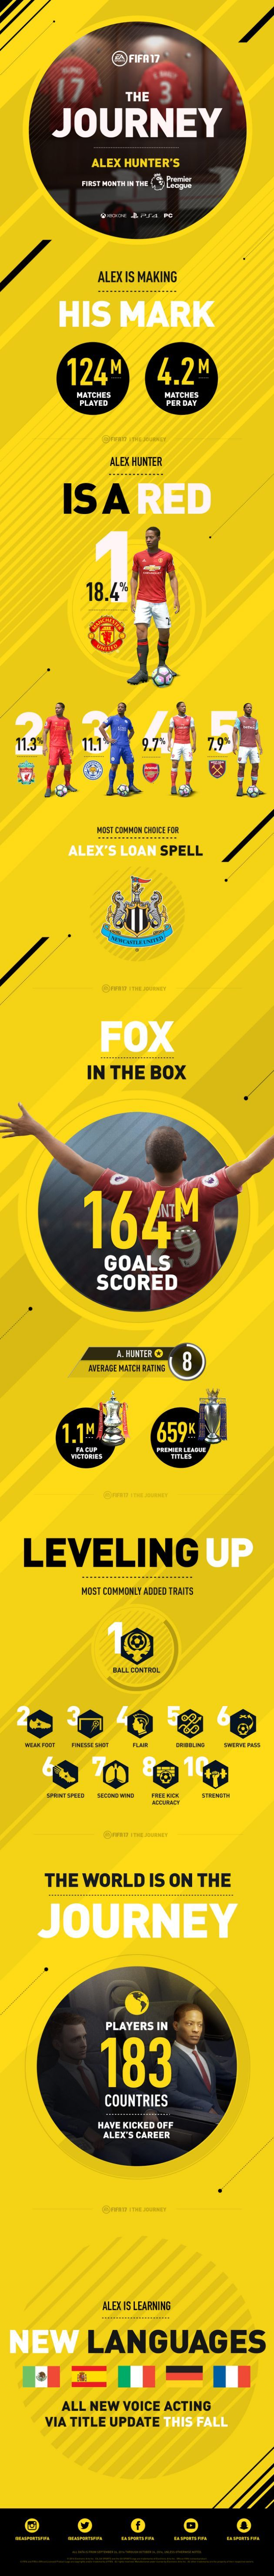 Alex Hunter plays 124m matches and scores 164m goals in FIFA 17's 'The Journey'